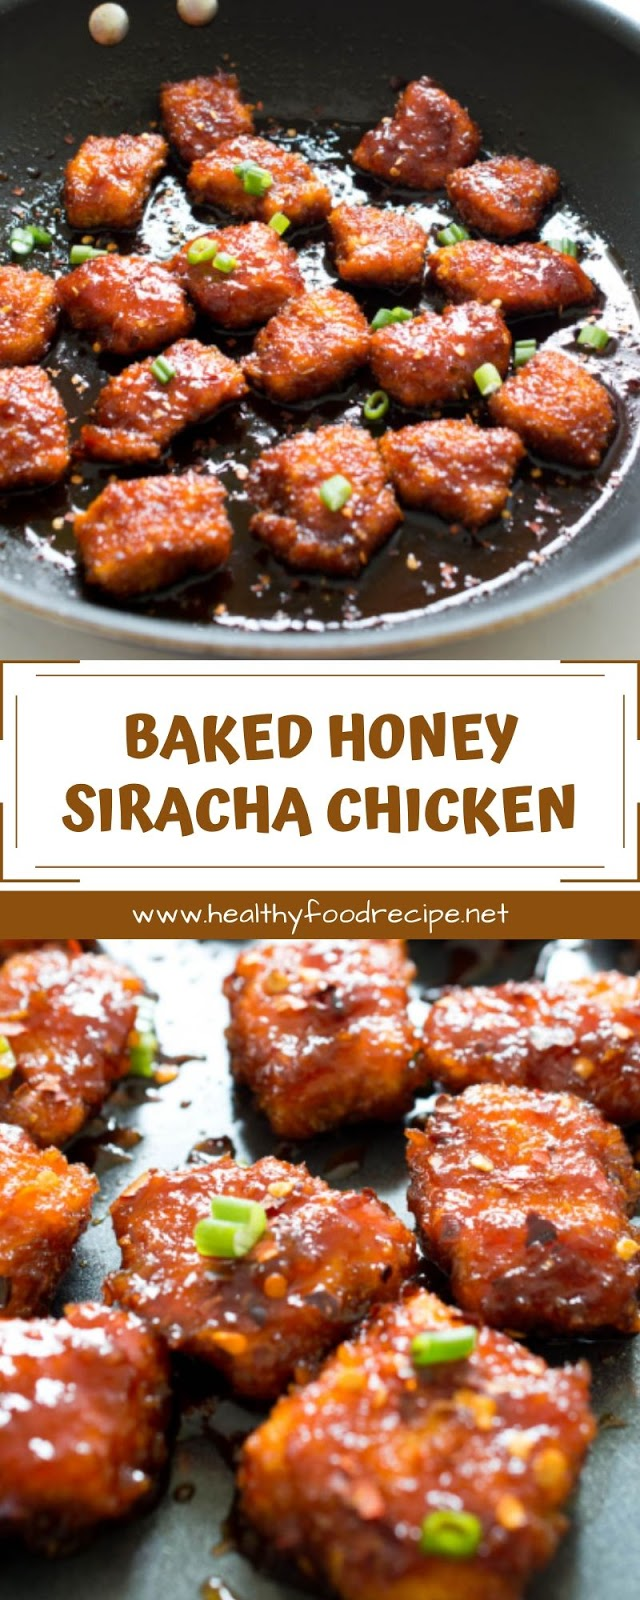 BAKED HONEY SIRACHA CHICKEN